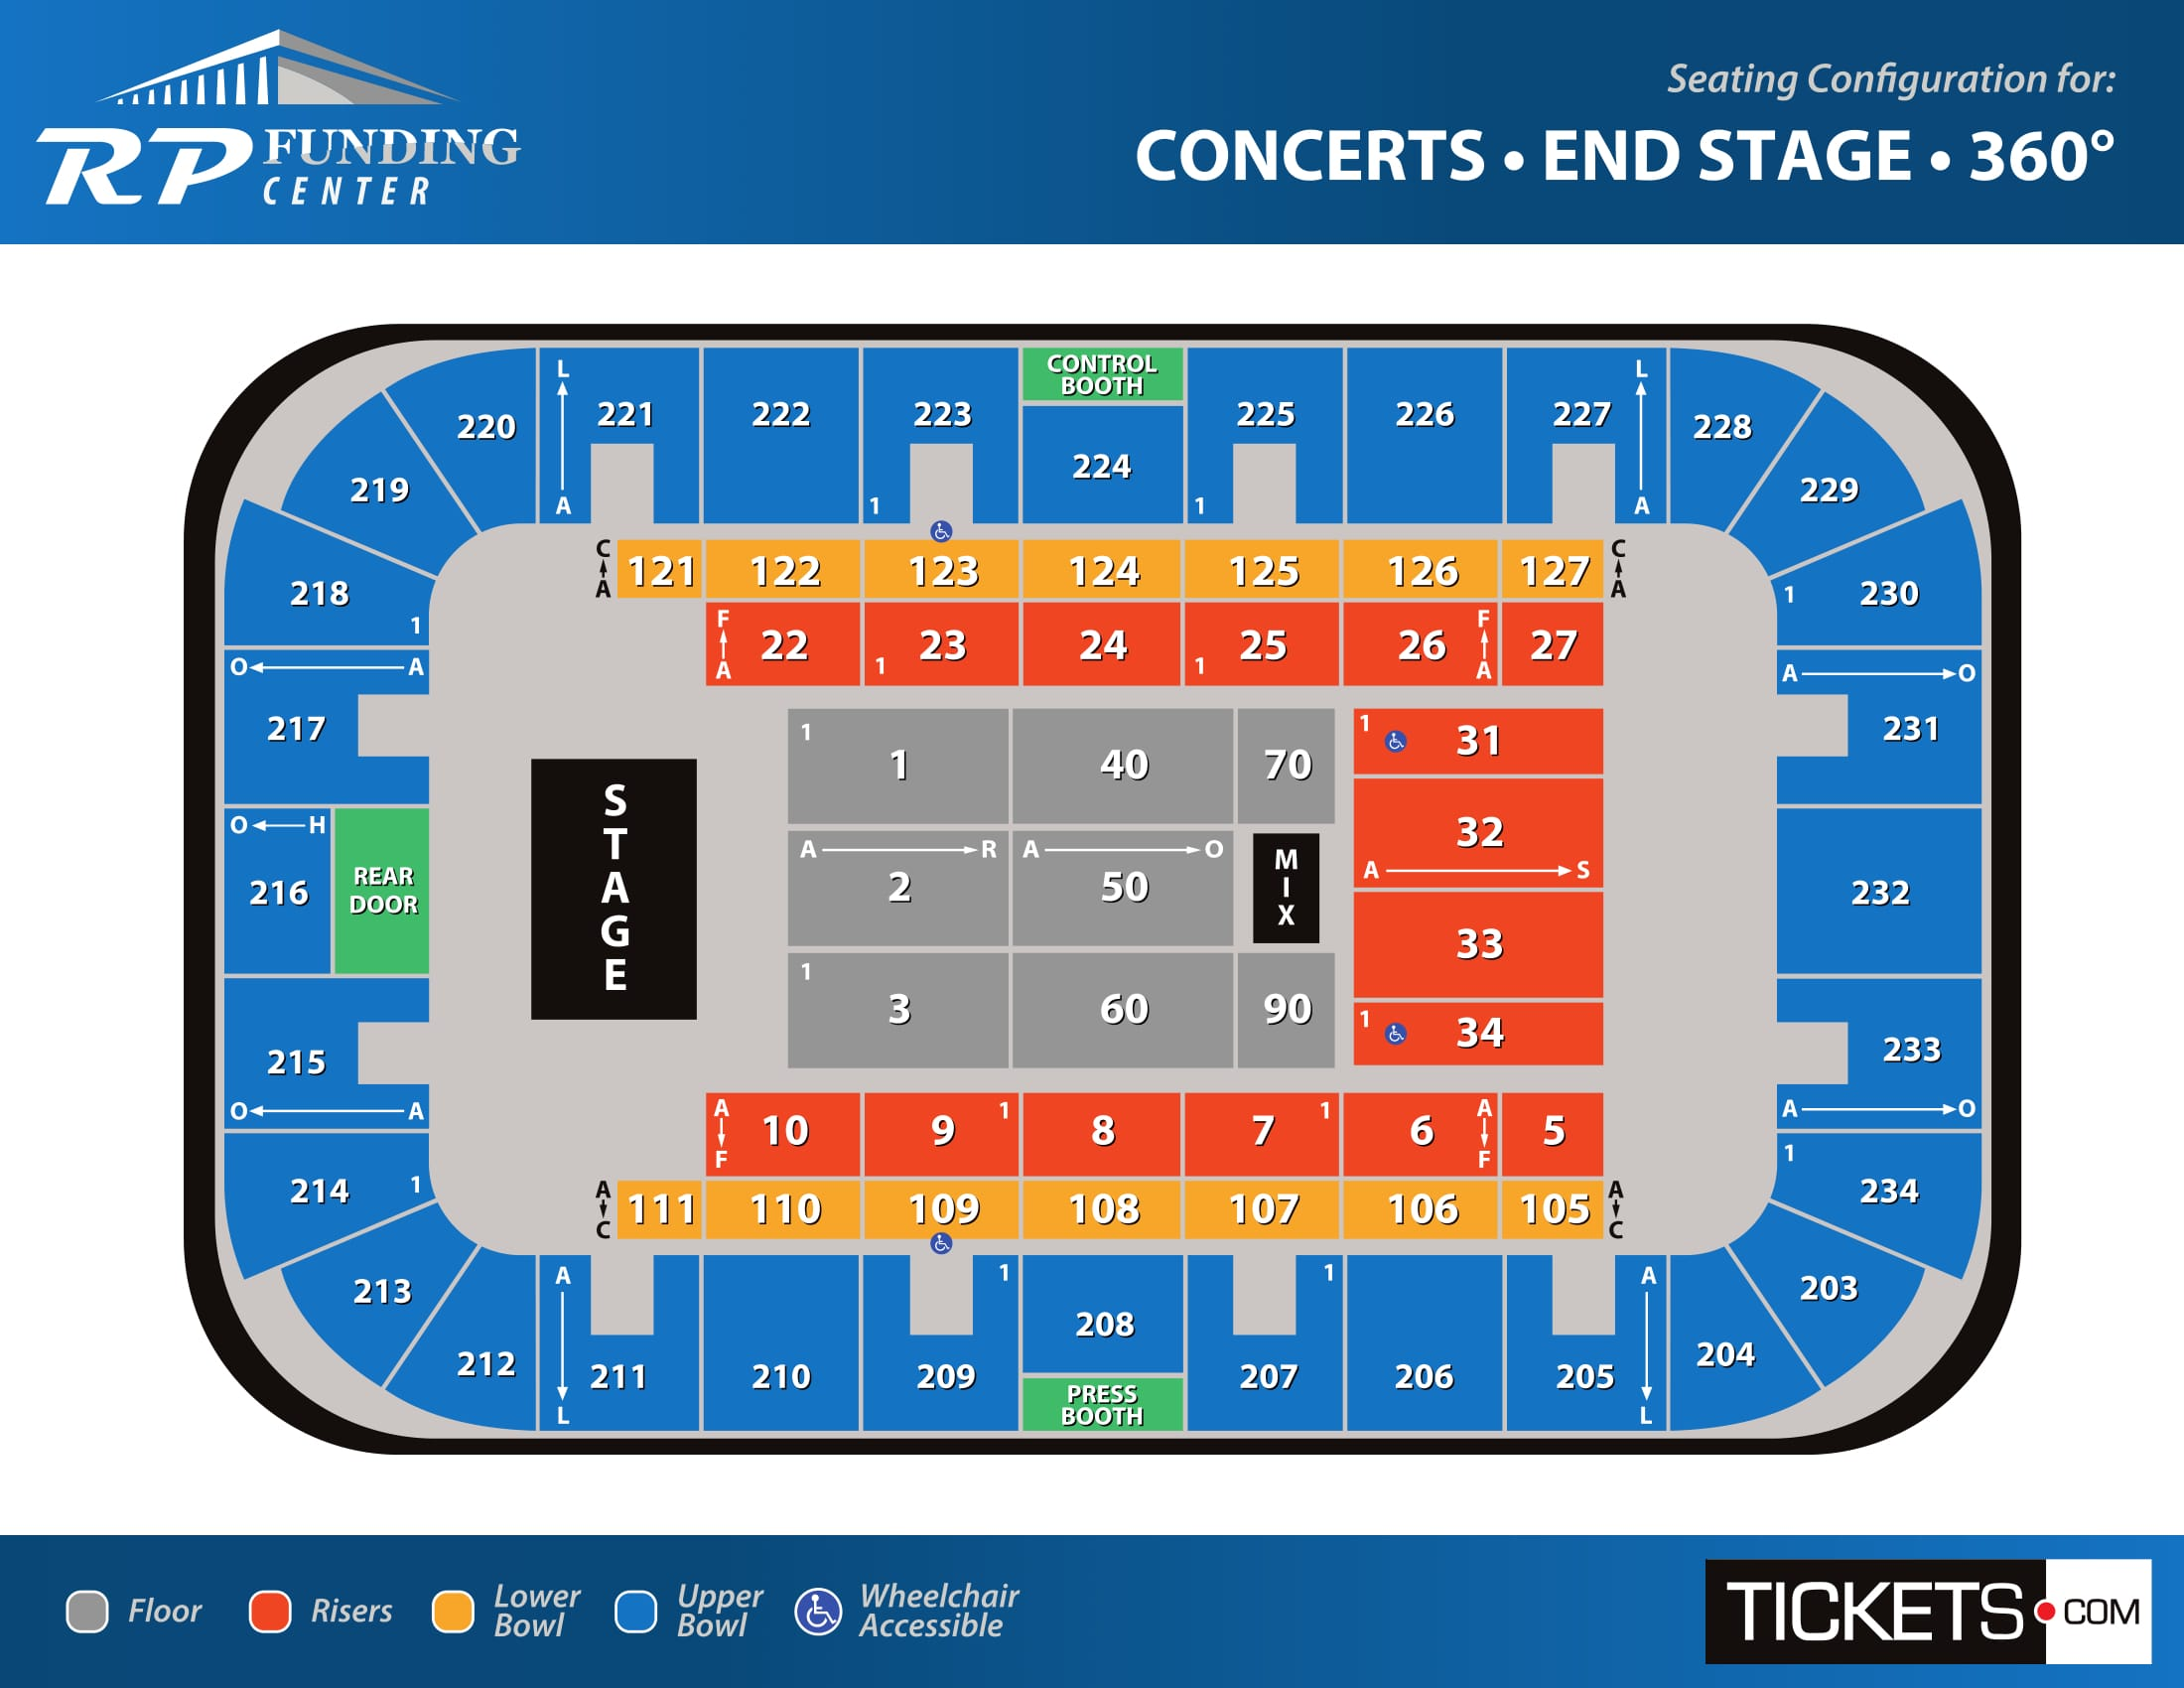 Concerts - End Stage seating map